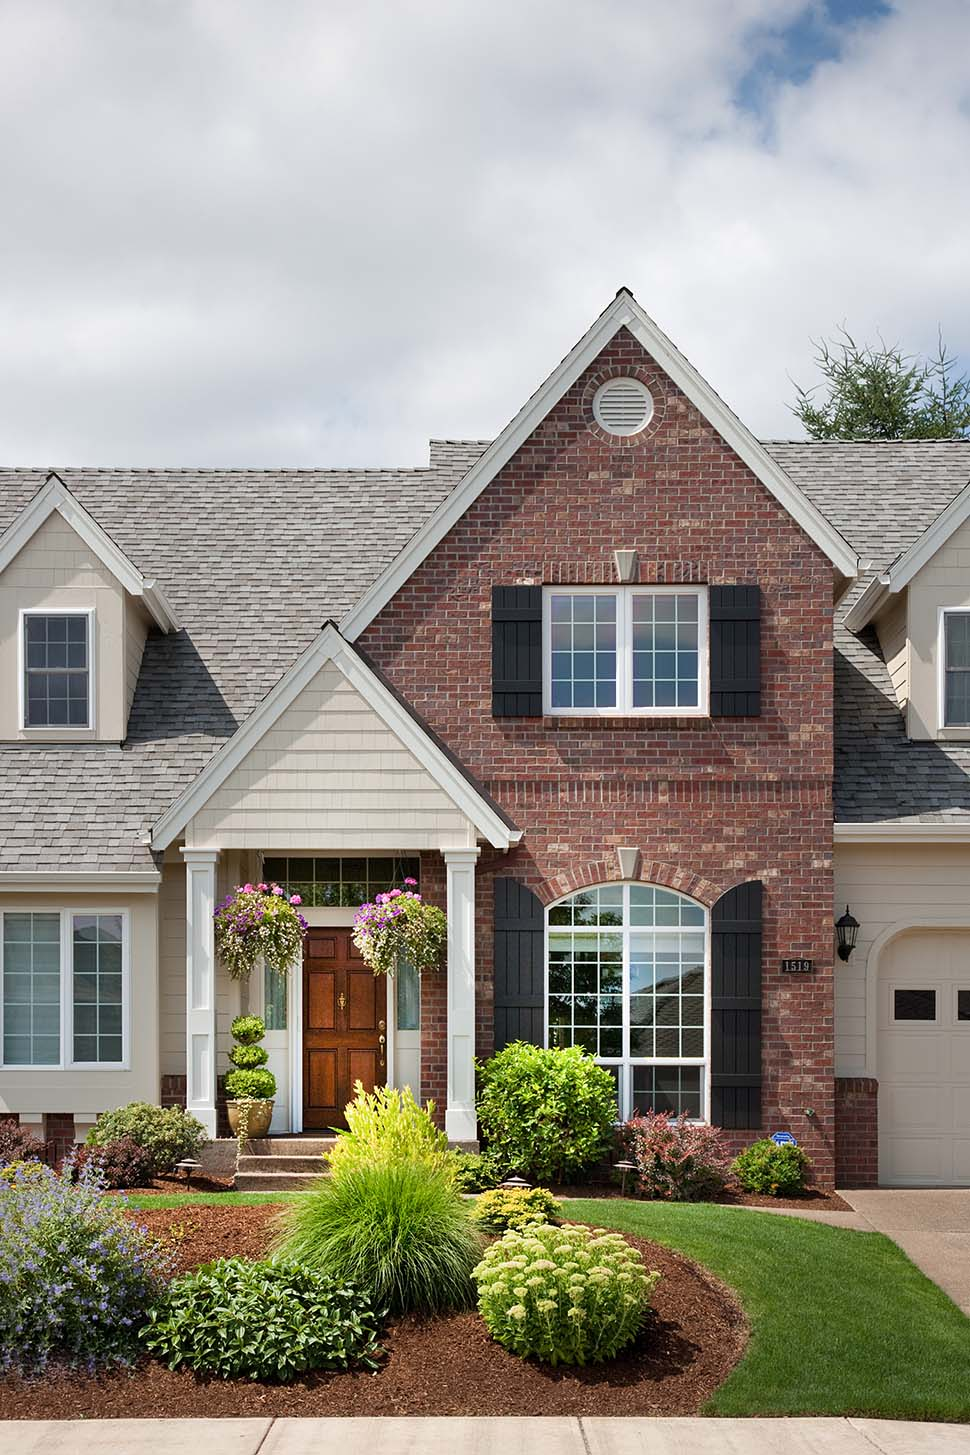 Craftsman, European, French Country, Traditional House Plan 81255 with 4 Beds, 3 Baths, 3 Car Garage Picture 6